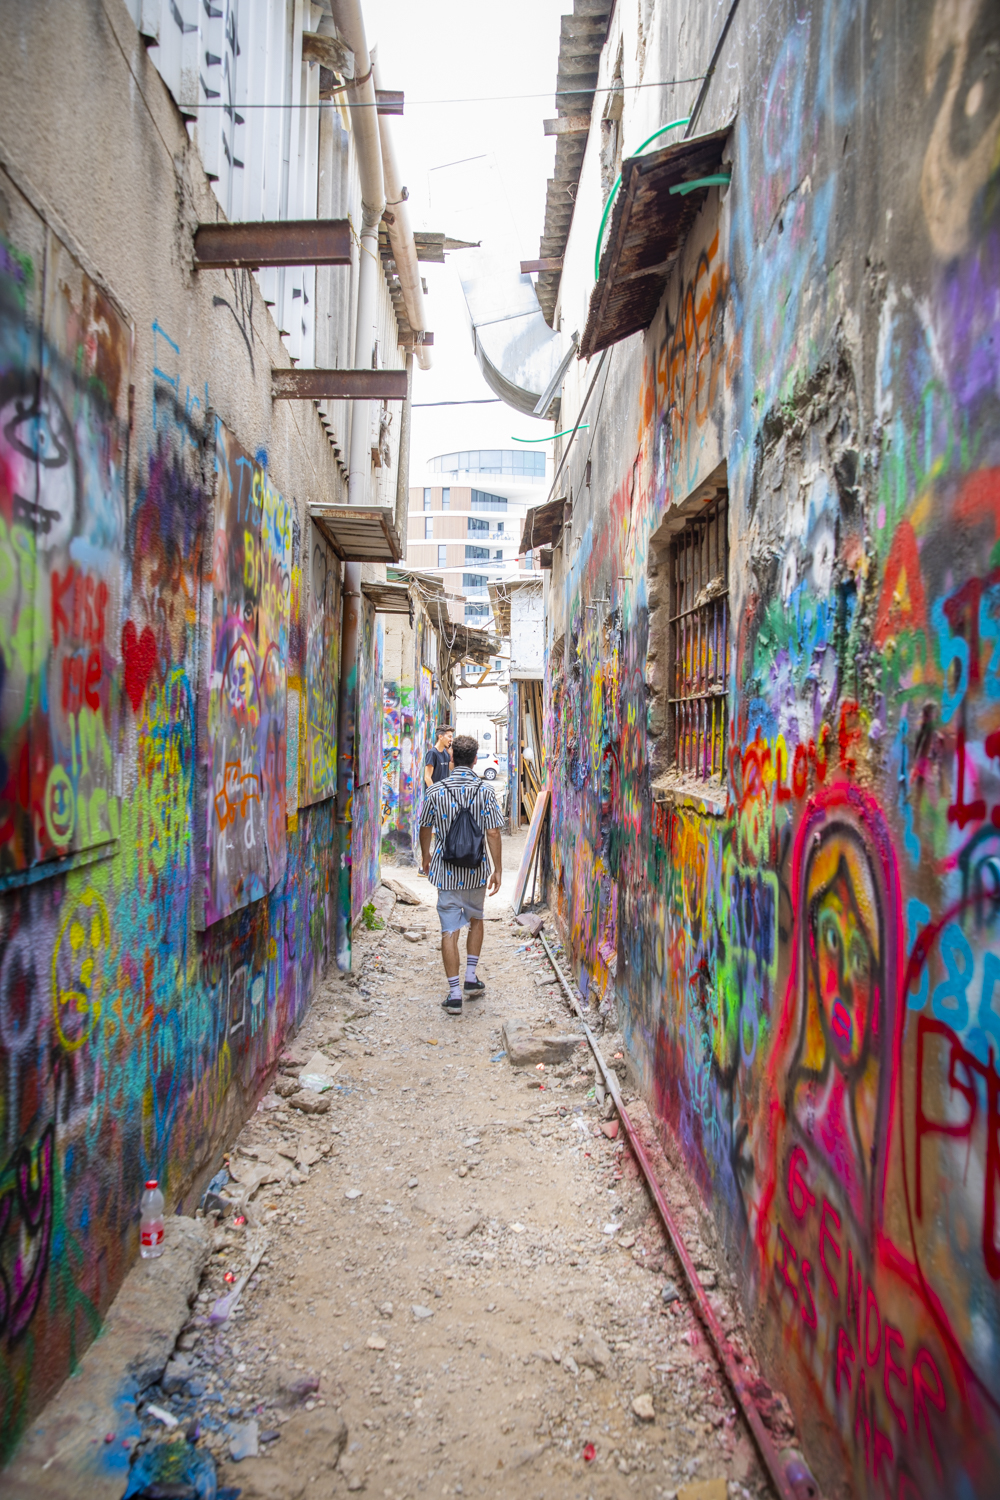 Niro Trip ( @nirotrip )leads a graffiti tour through the streets and allies of Tel Aviv. Going along with the whole modern revolution in Israel, the creative art scenes have also been thriving in the country.